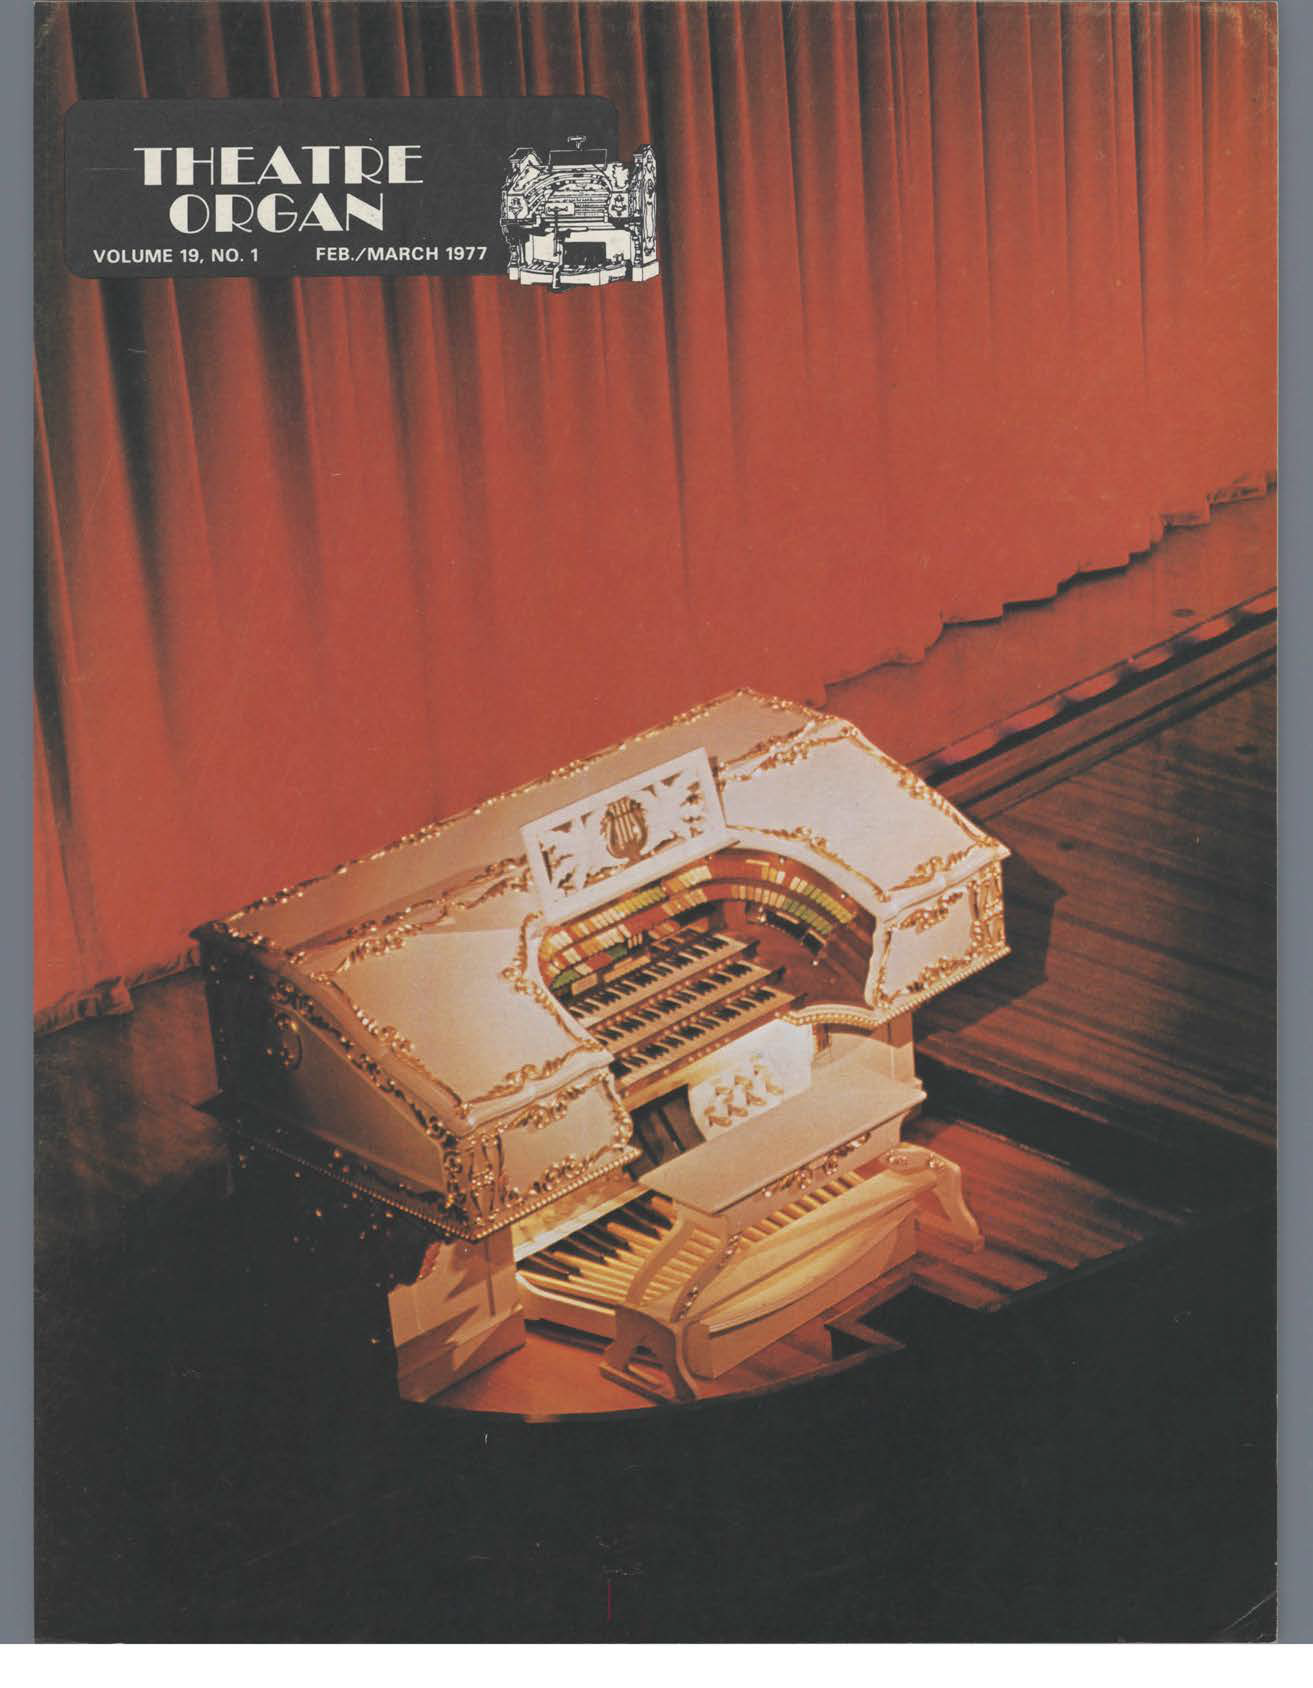 Theatre Organ, February - March 1977, Volume 19, Number 1